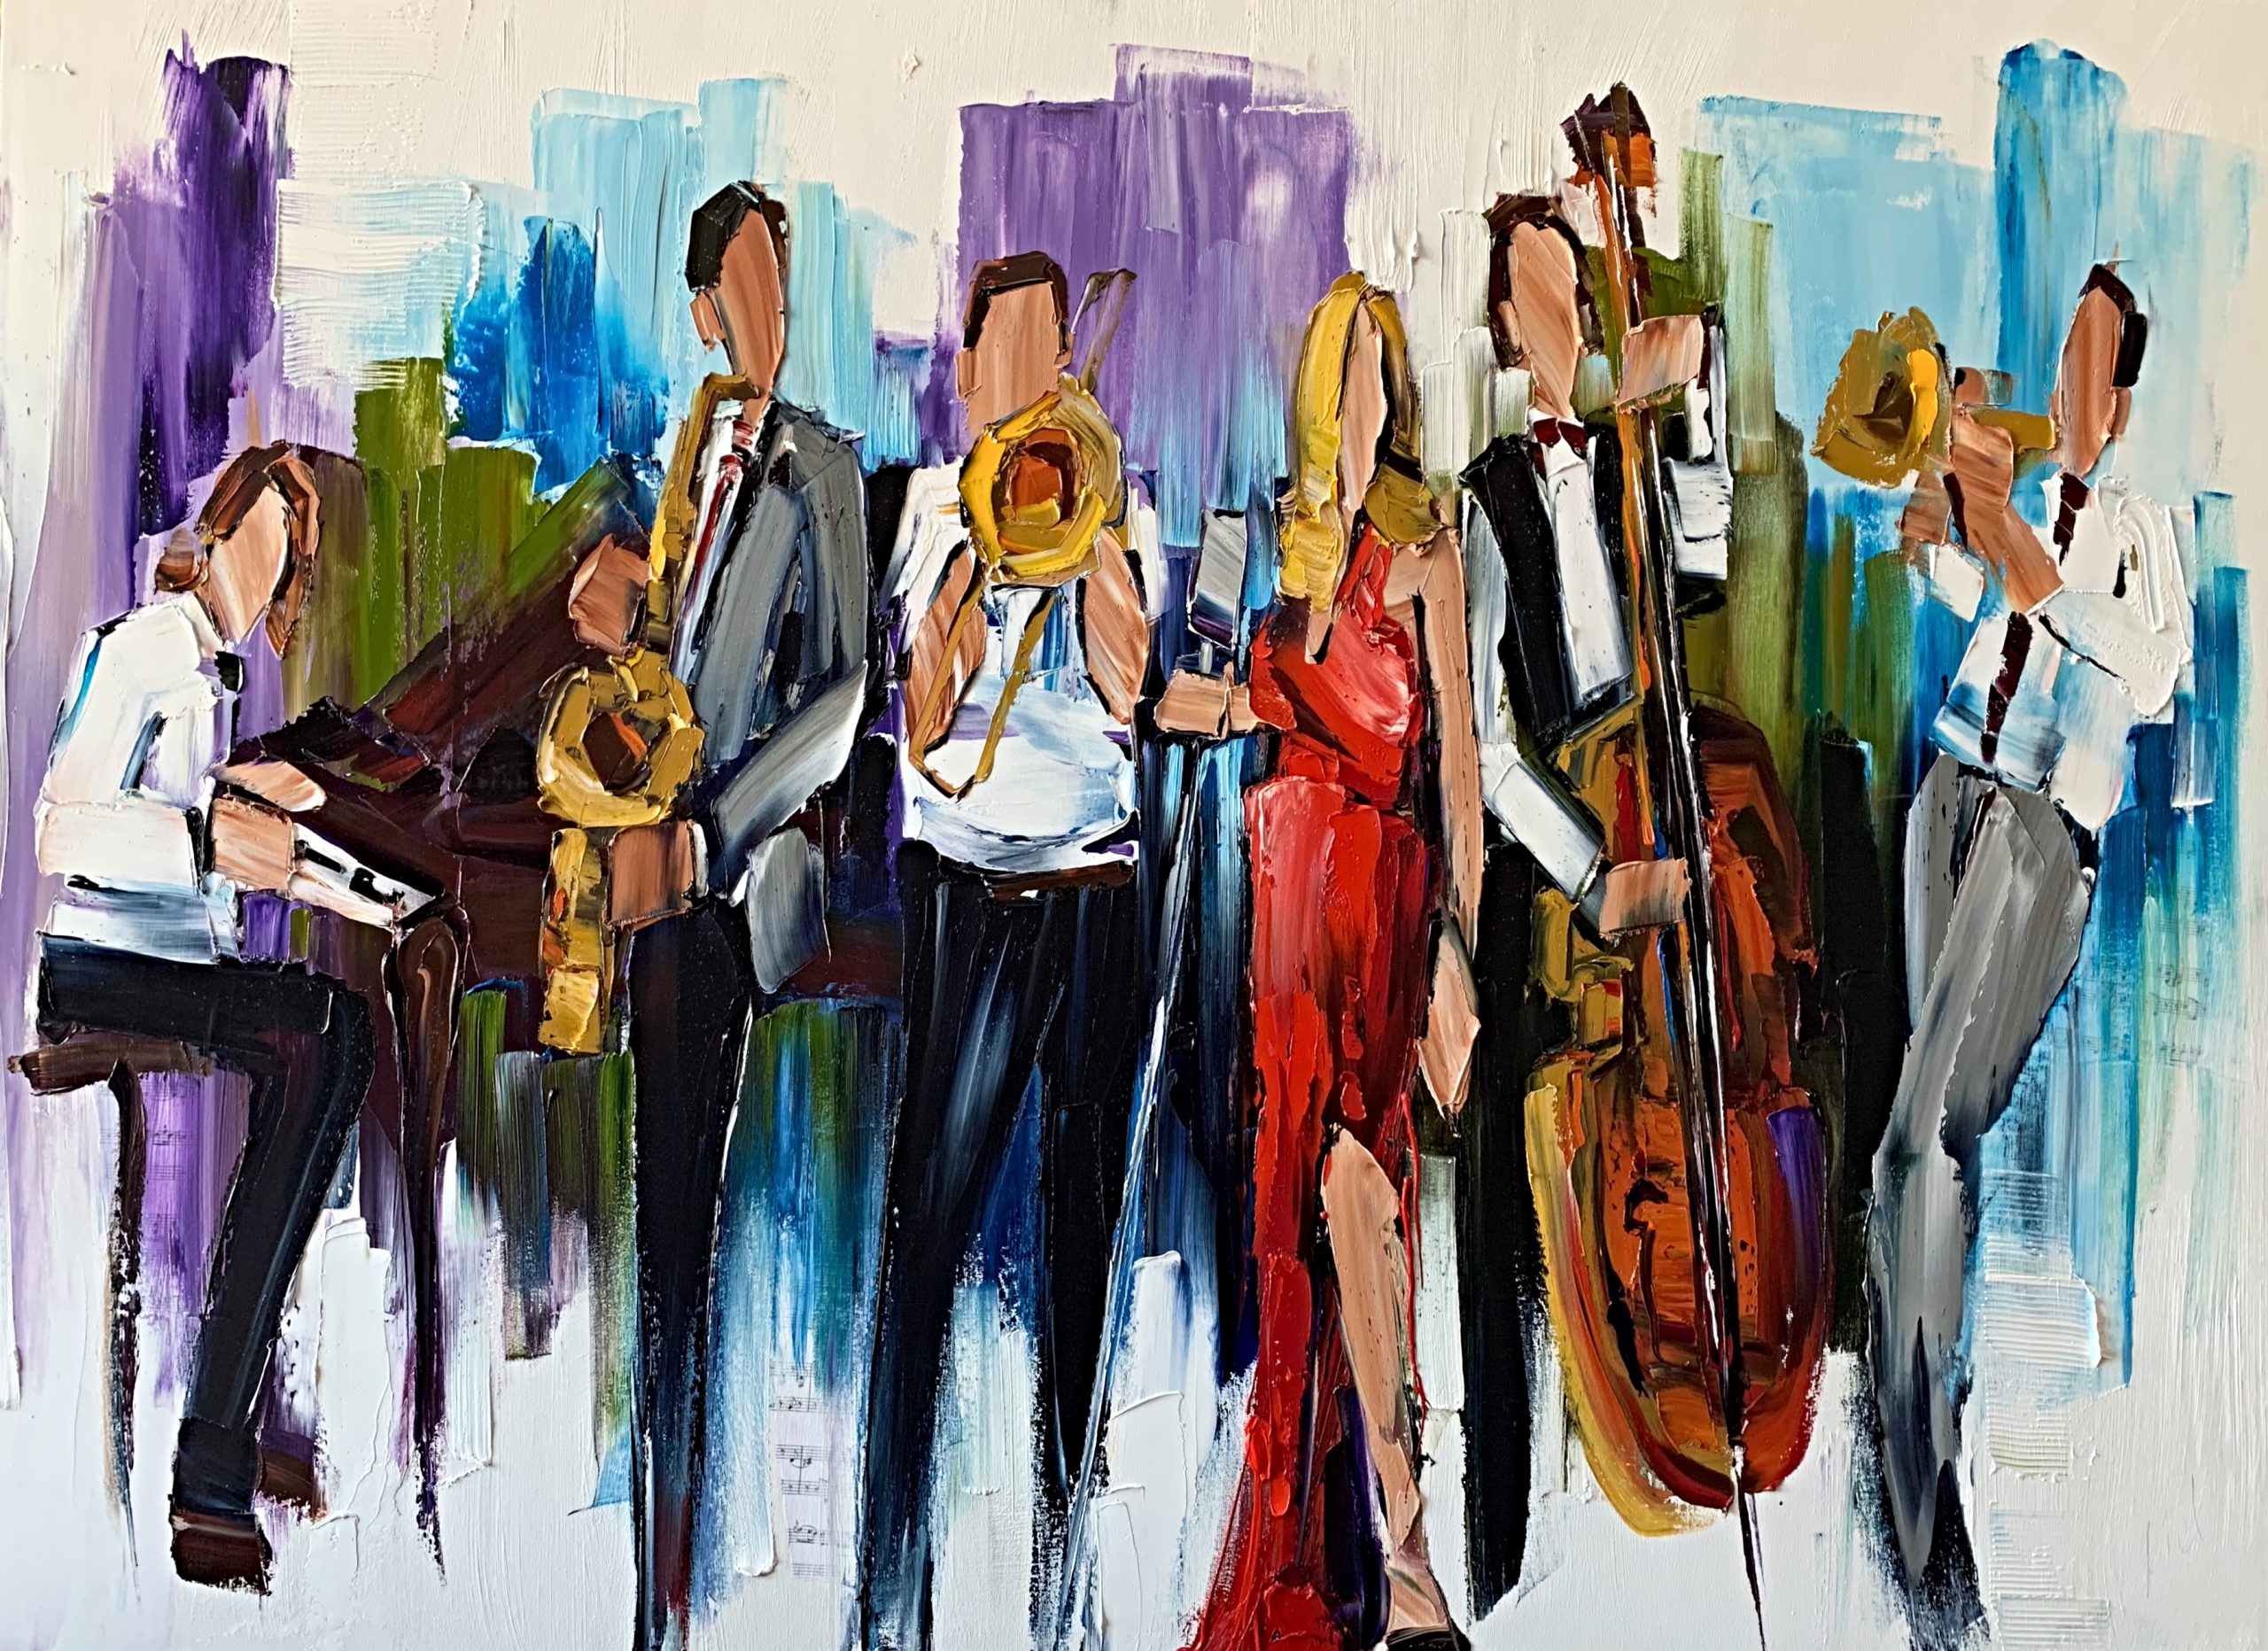 Turn it up Loud, oil musical band painting by Kimberly Kiel | Effusion Art Gallery + Cast Glass Studio, Invermere BC